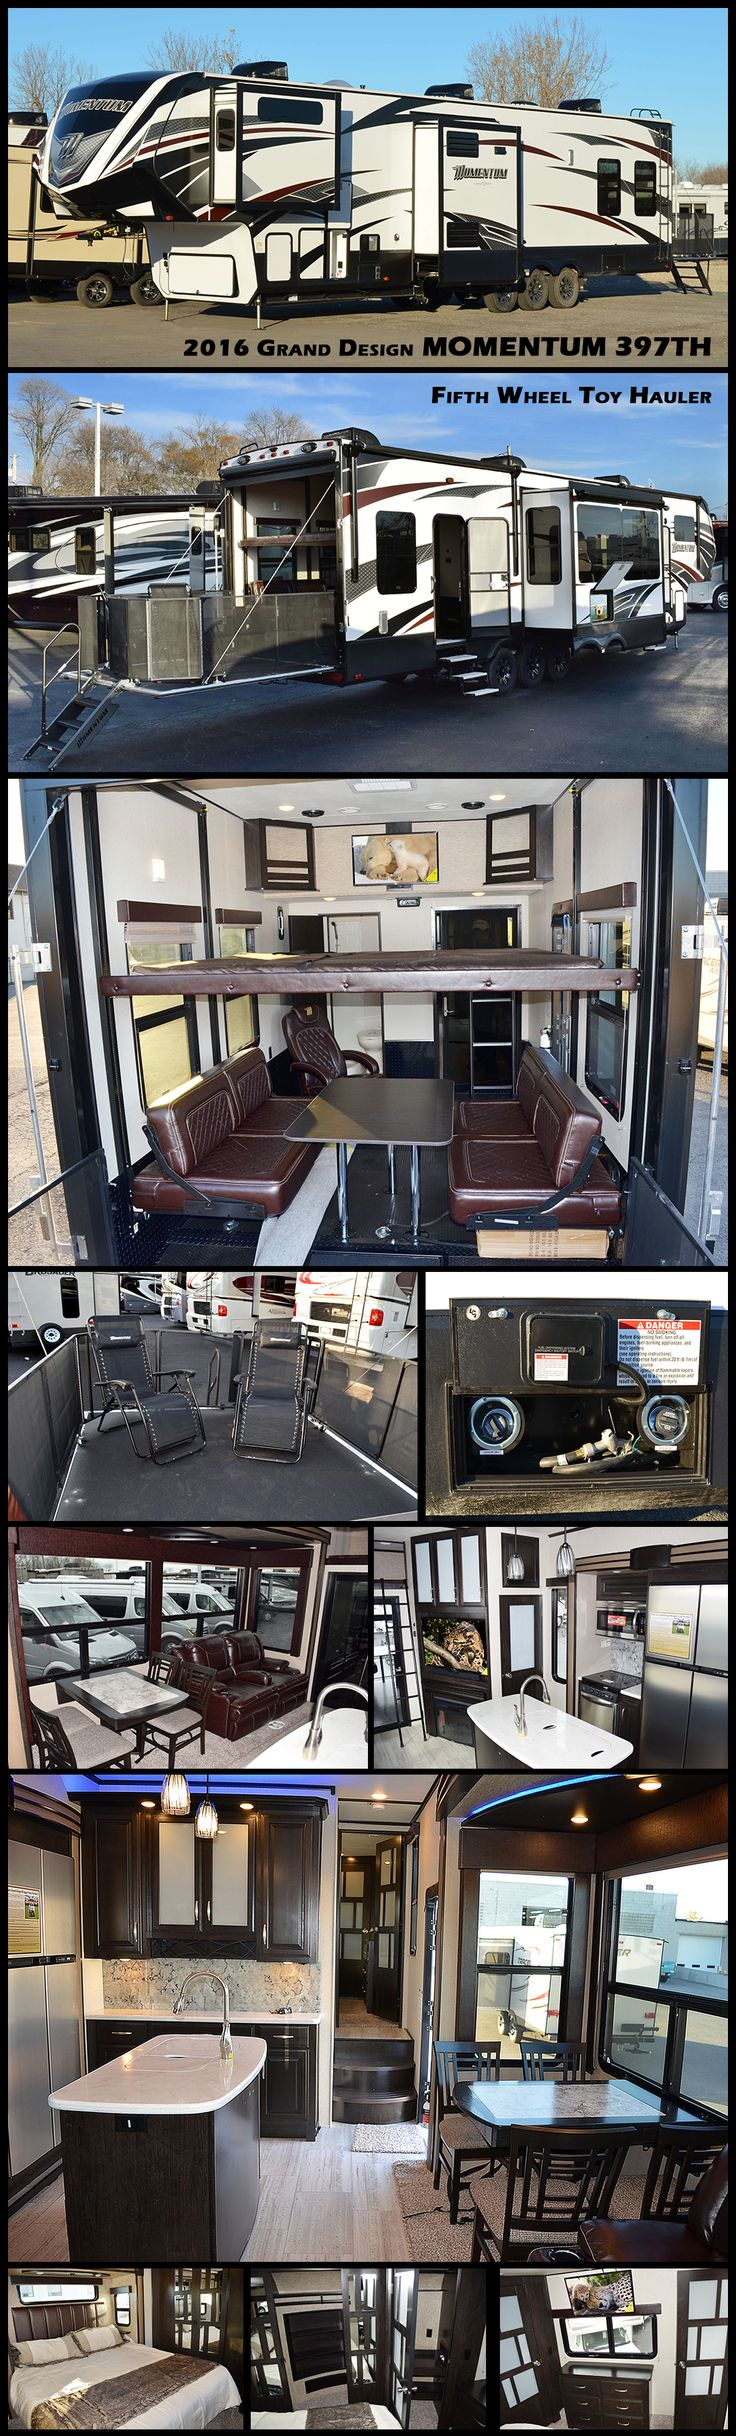 "Enjoy every adventure with family and friends in this 2016 GRAND DESIGN MOMENTUM toy hauler fifth wheel. This 397TH model offers a 12' 6"" garage space for your toys, sleeping for up to 8, and two full baths, plus more! The 2,500 lb. tie downs will keep everything secure as you travel. There is a twin loft above the front of the cargo garage that the kids will surely love, and a full bath off the garage space will make it easy to keep all the dirt and grim out of the main living area."